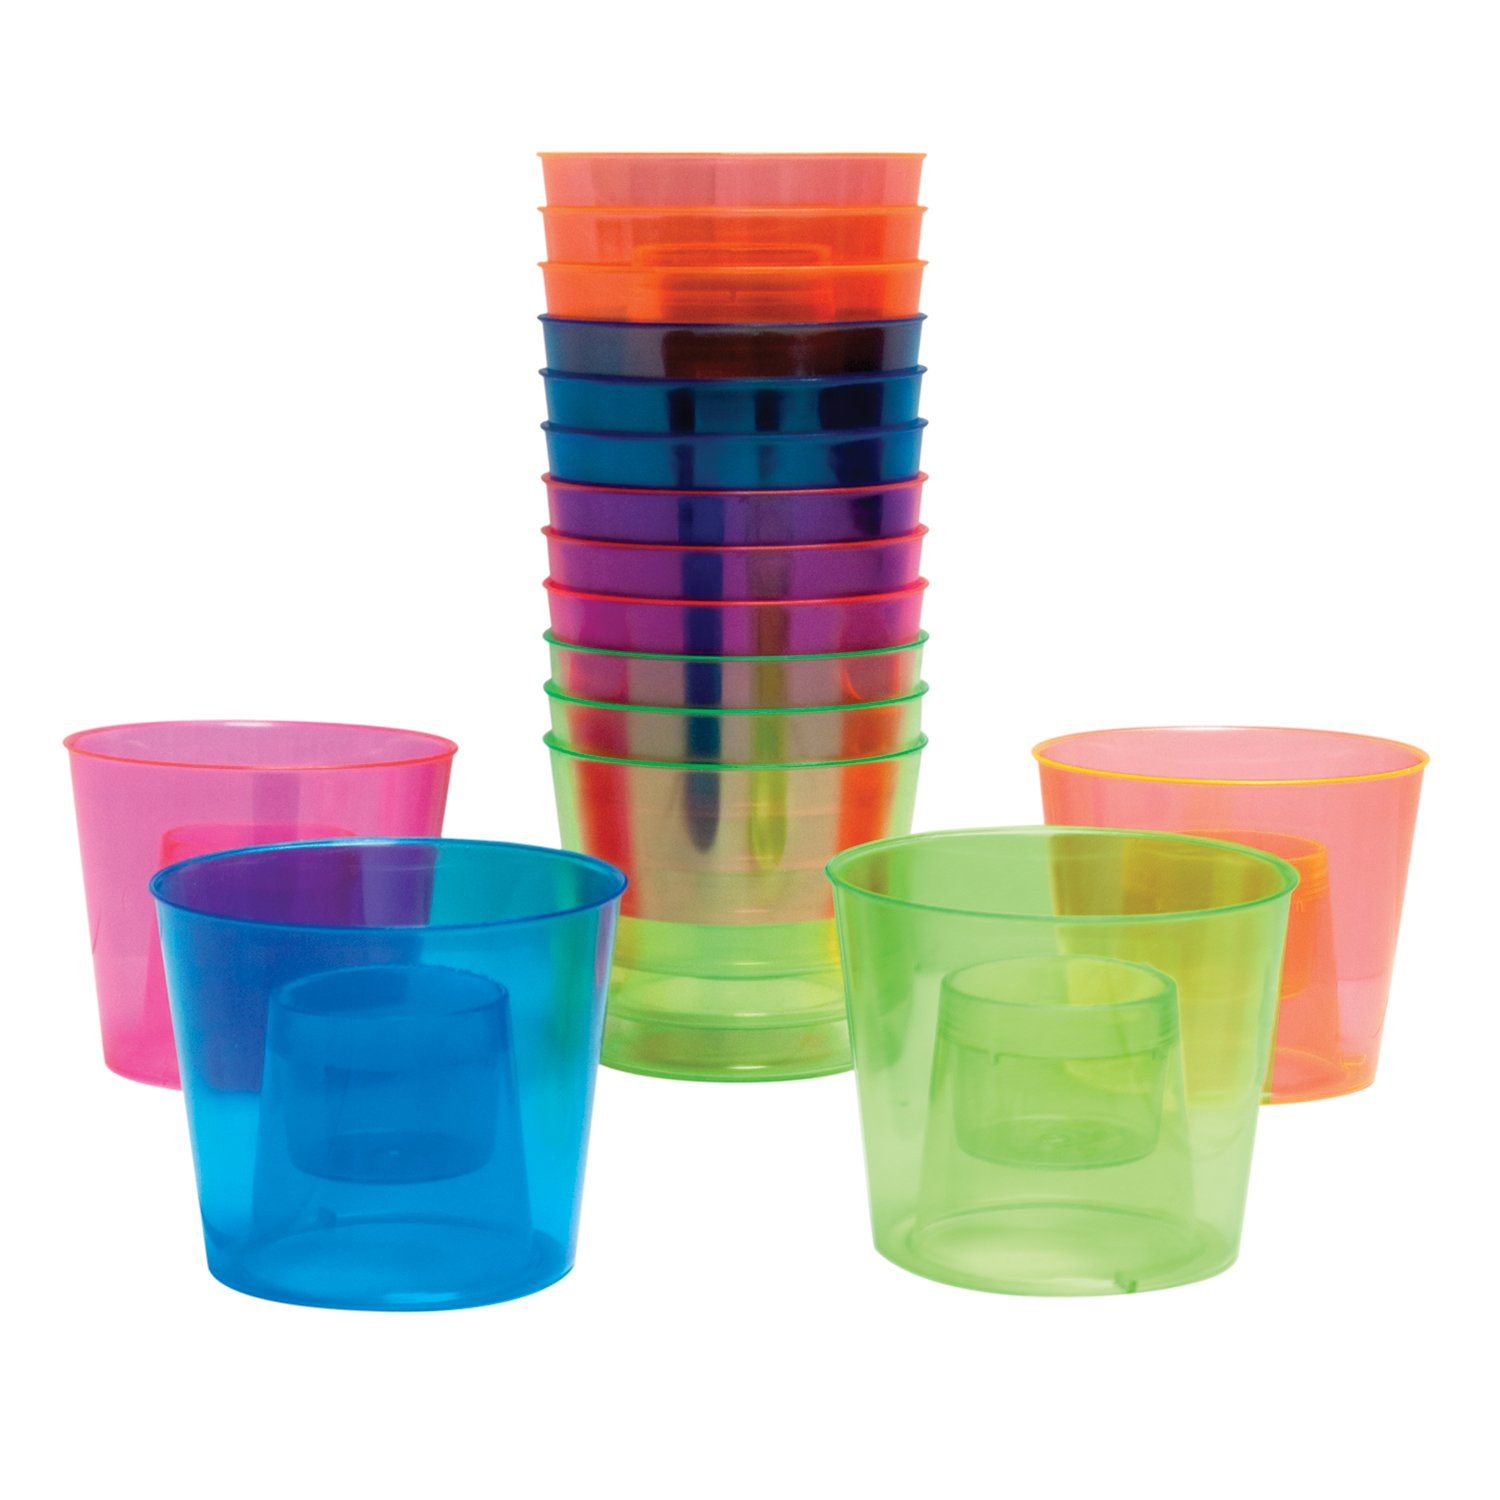 Party Essentials N490 Brights Plastic Bomber Cup, 4 oz. Capacity for Outer Cup, 1 oz. Capacity for Inner Cup, Assorted Neon Pink/Green/Blue/Orange (24 Packs of 12)